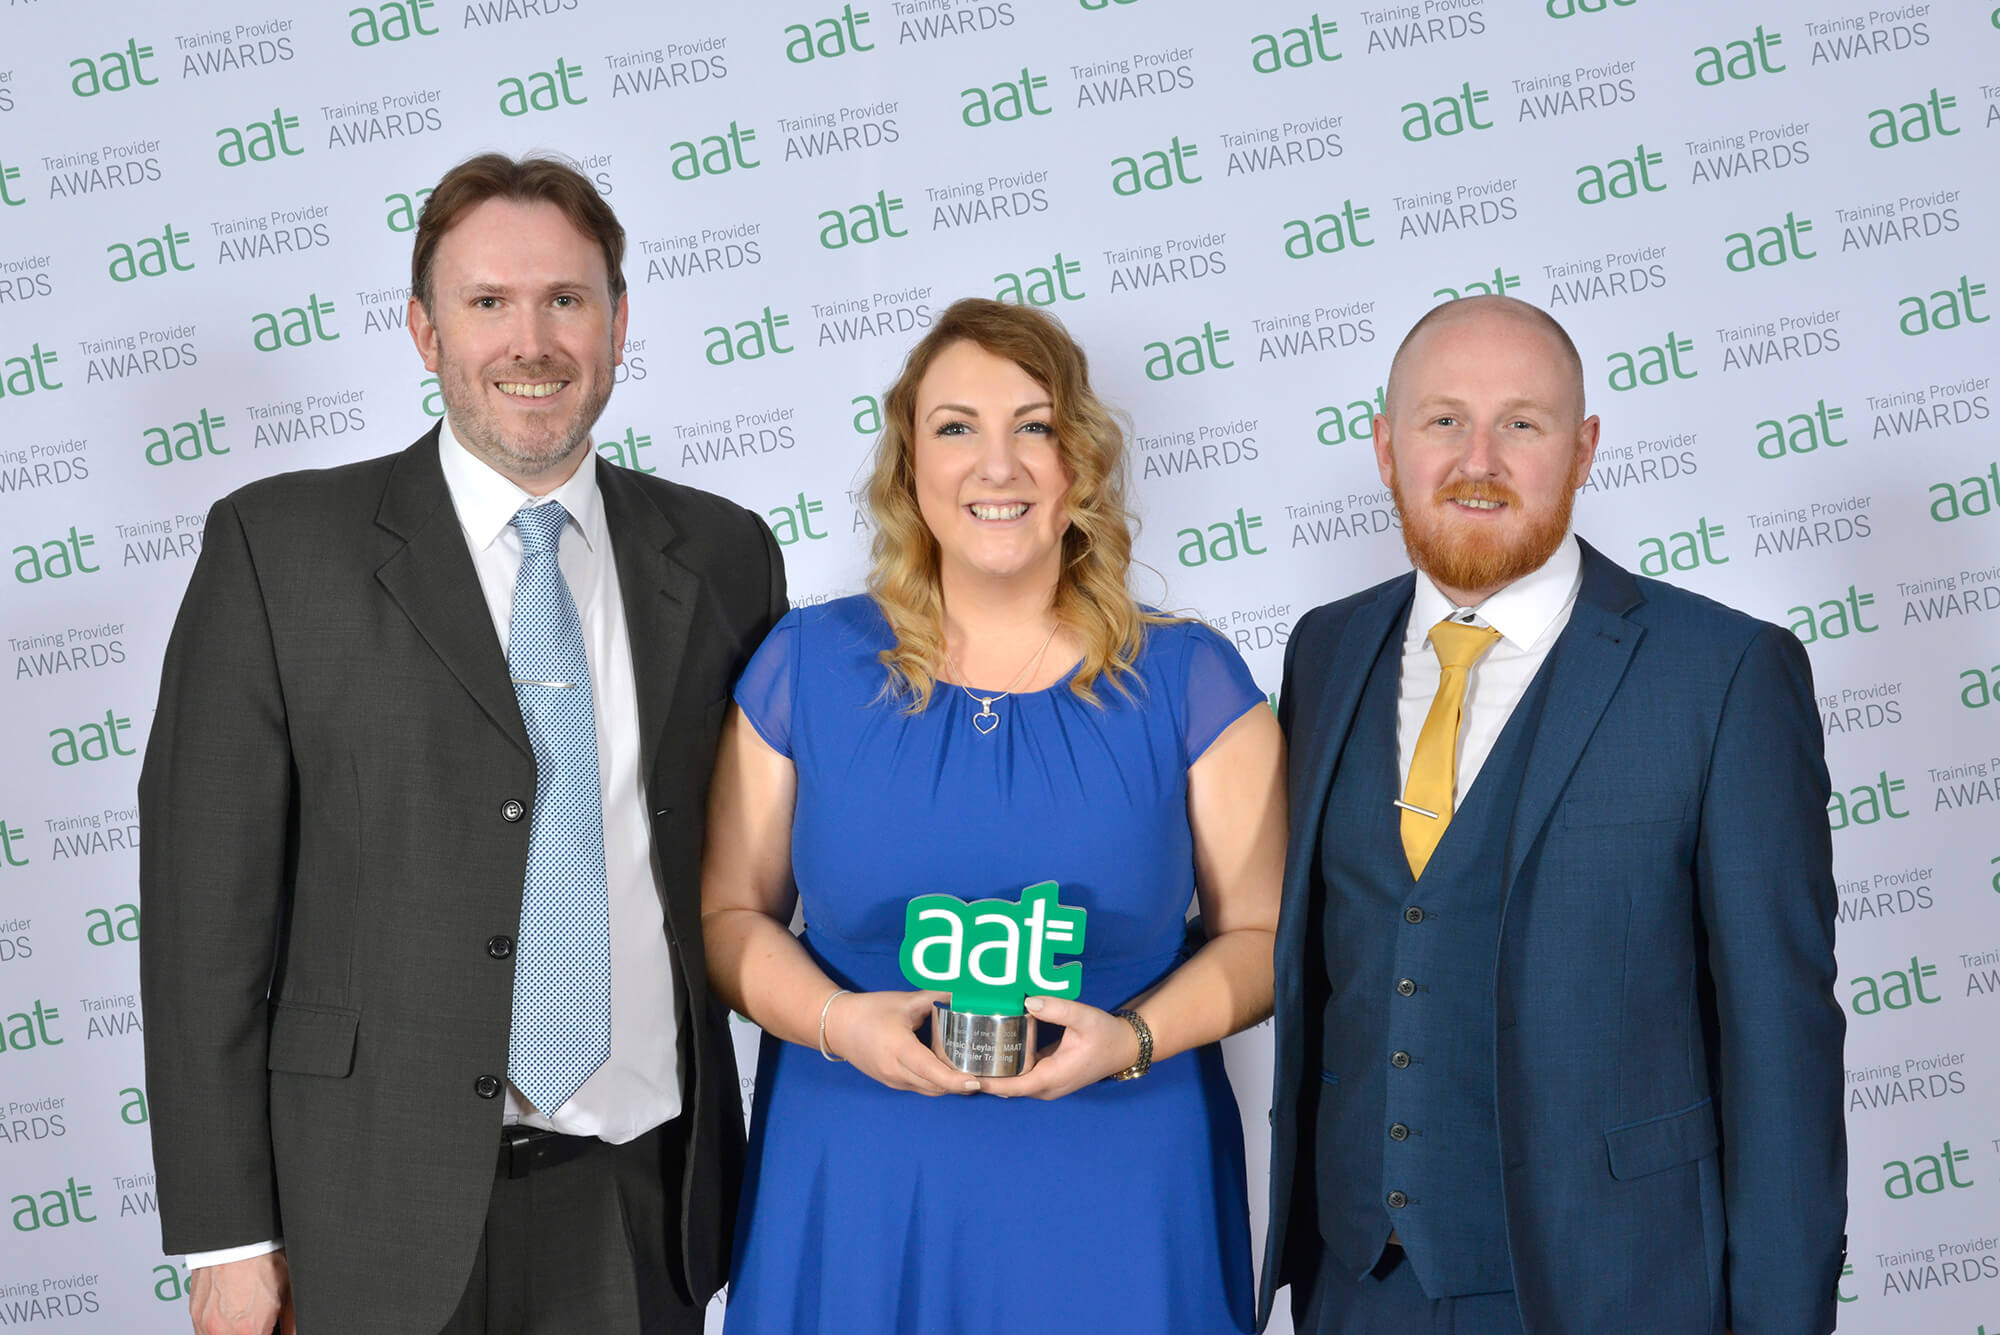 AAT Awards - Student of the year